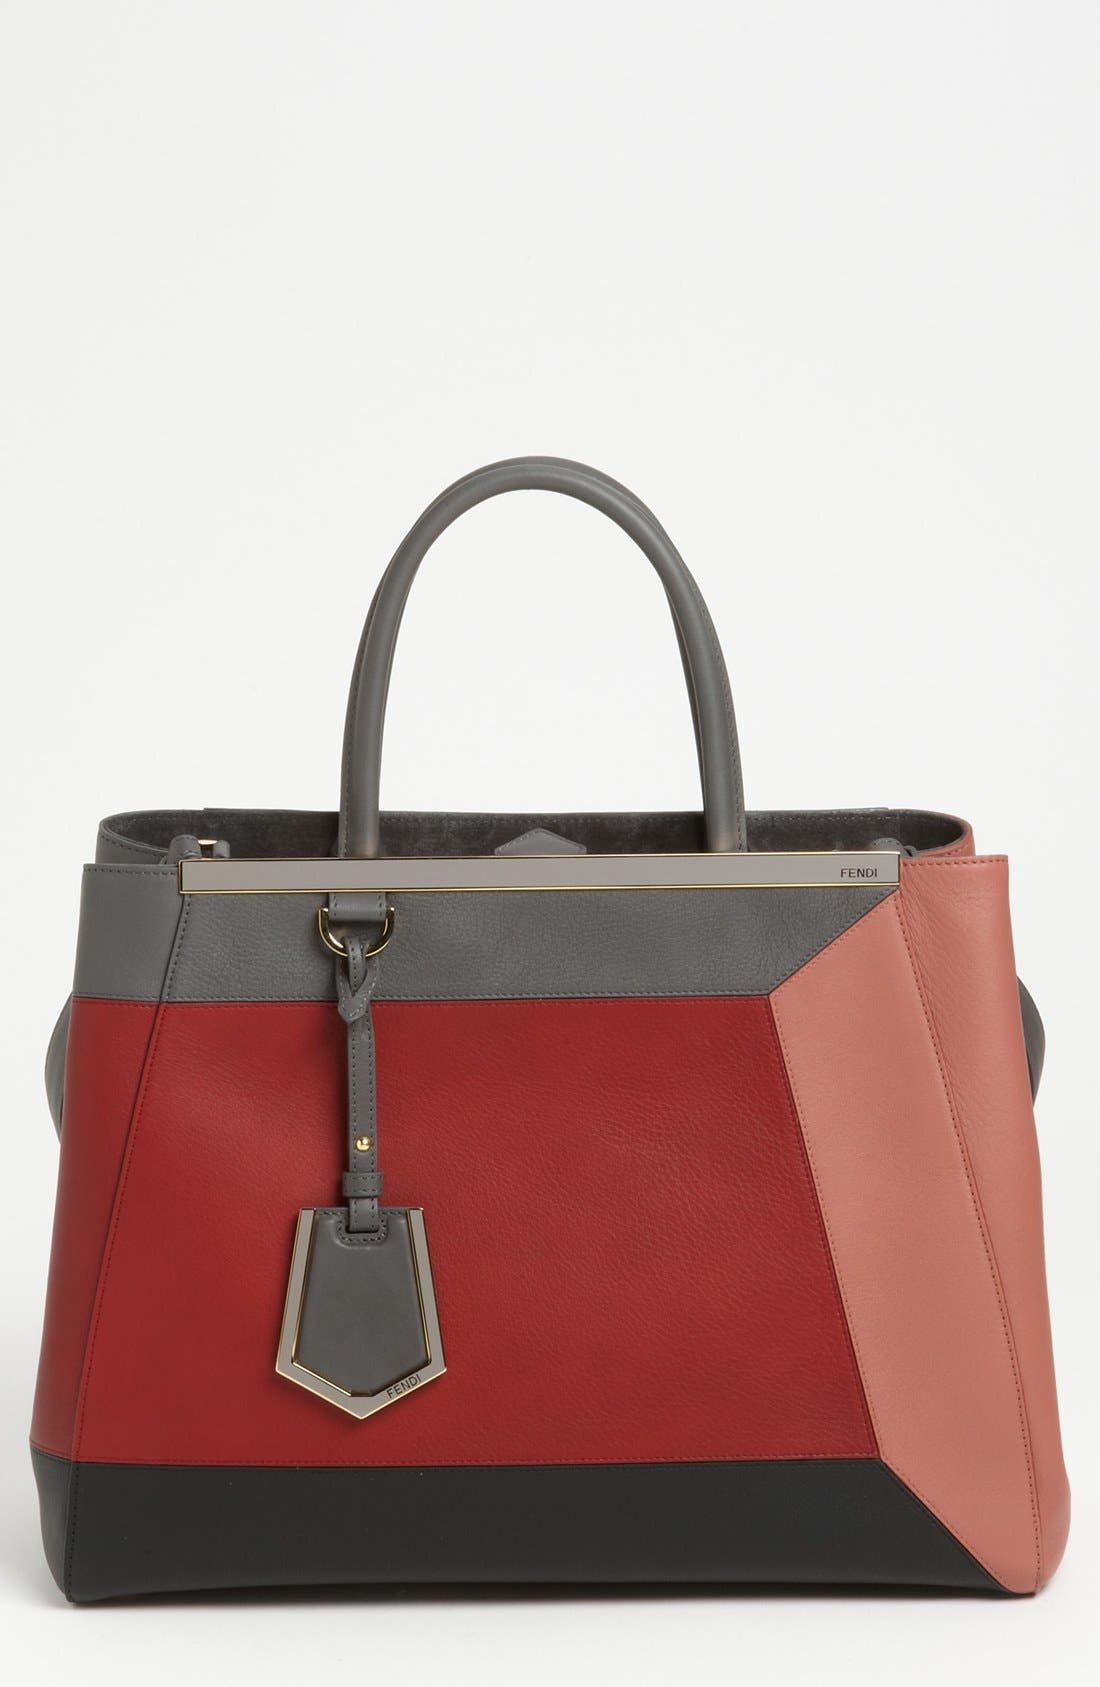 Main Image - Fendi 'Geometric 2Jours - Medium' Leather Shopper